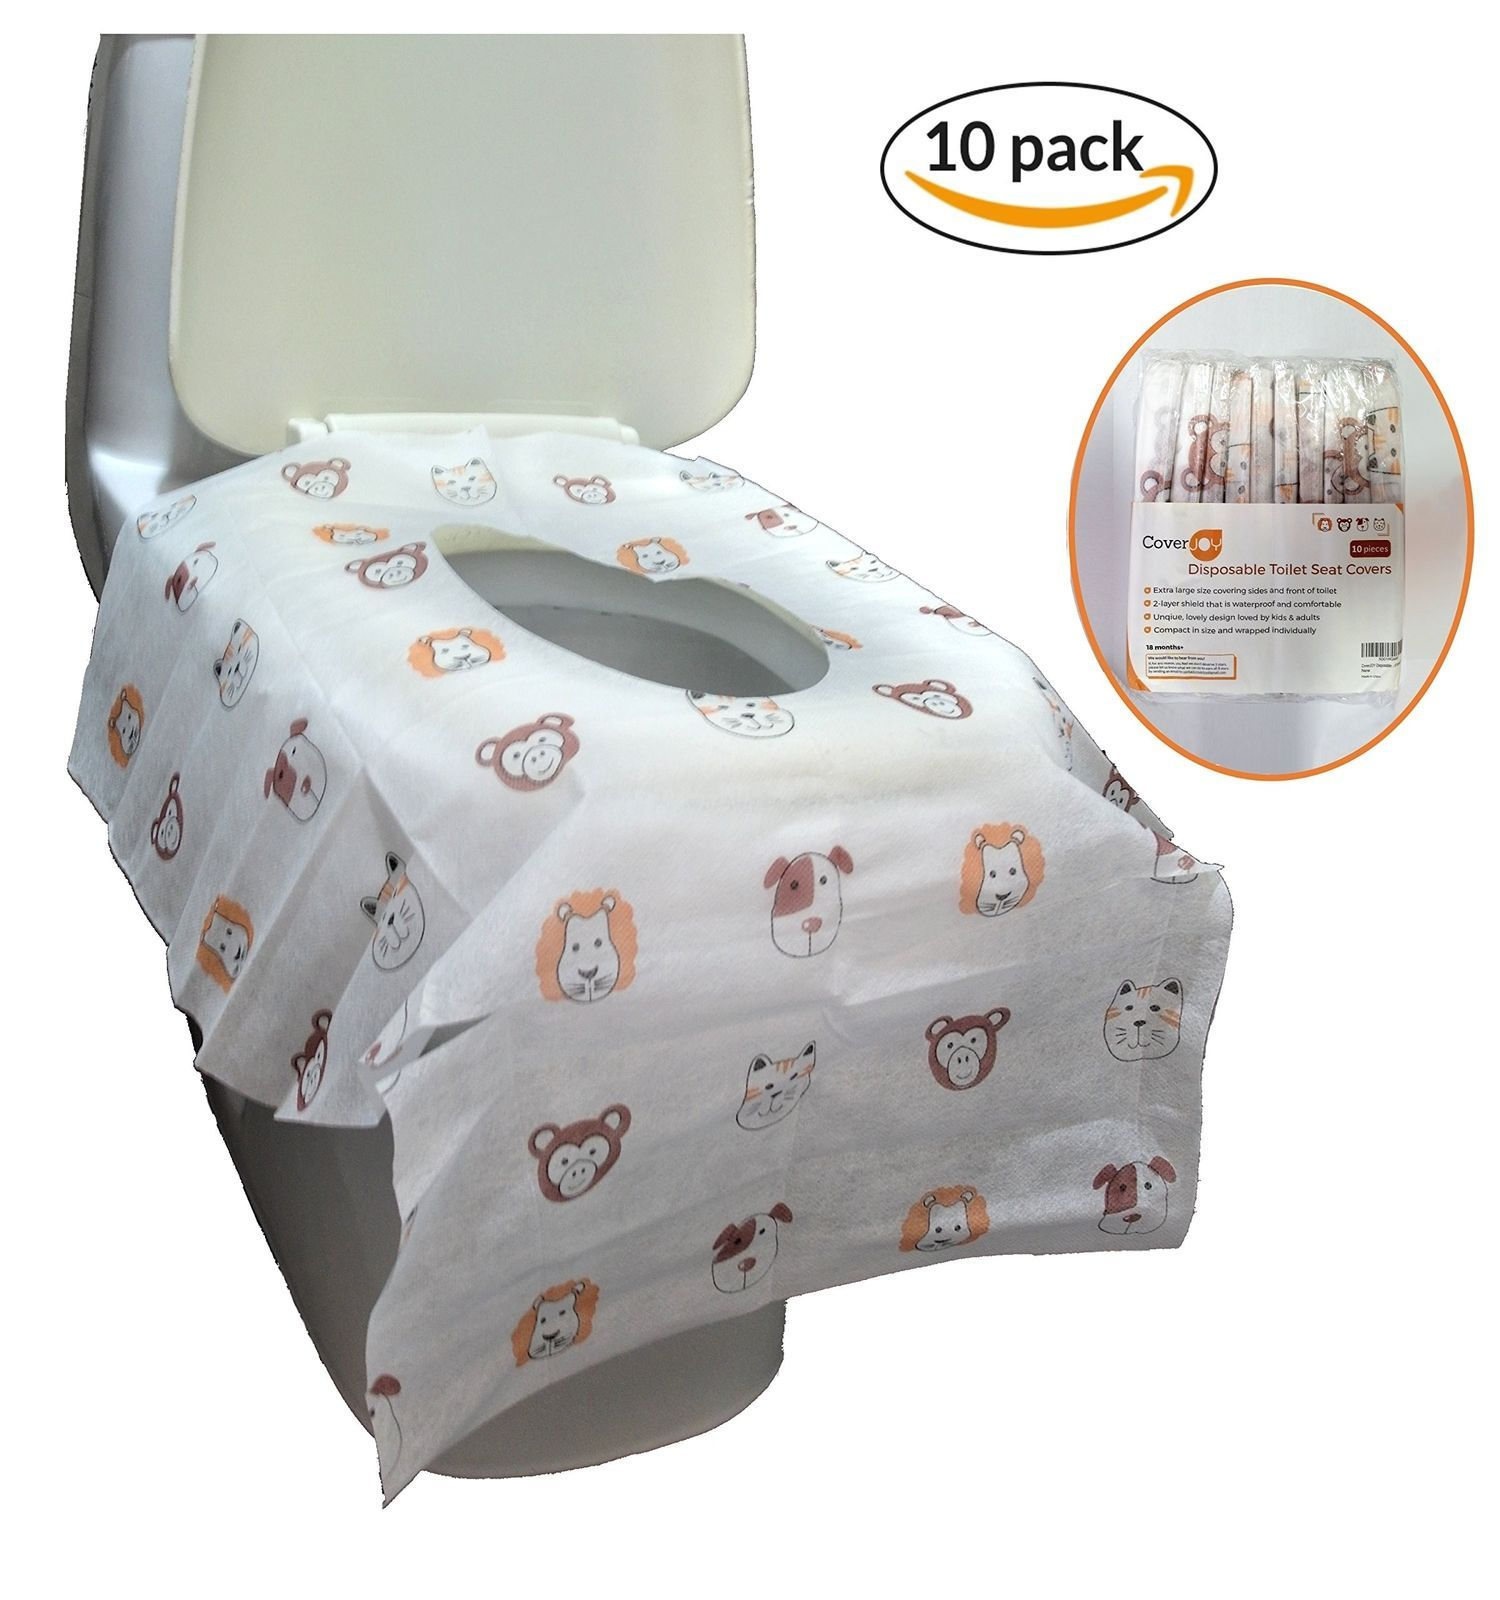 disposable toilet seat covers extra large size perfect for toddlers